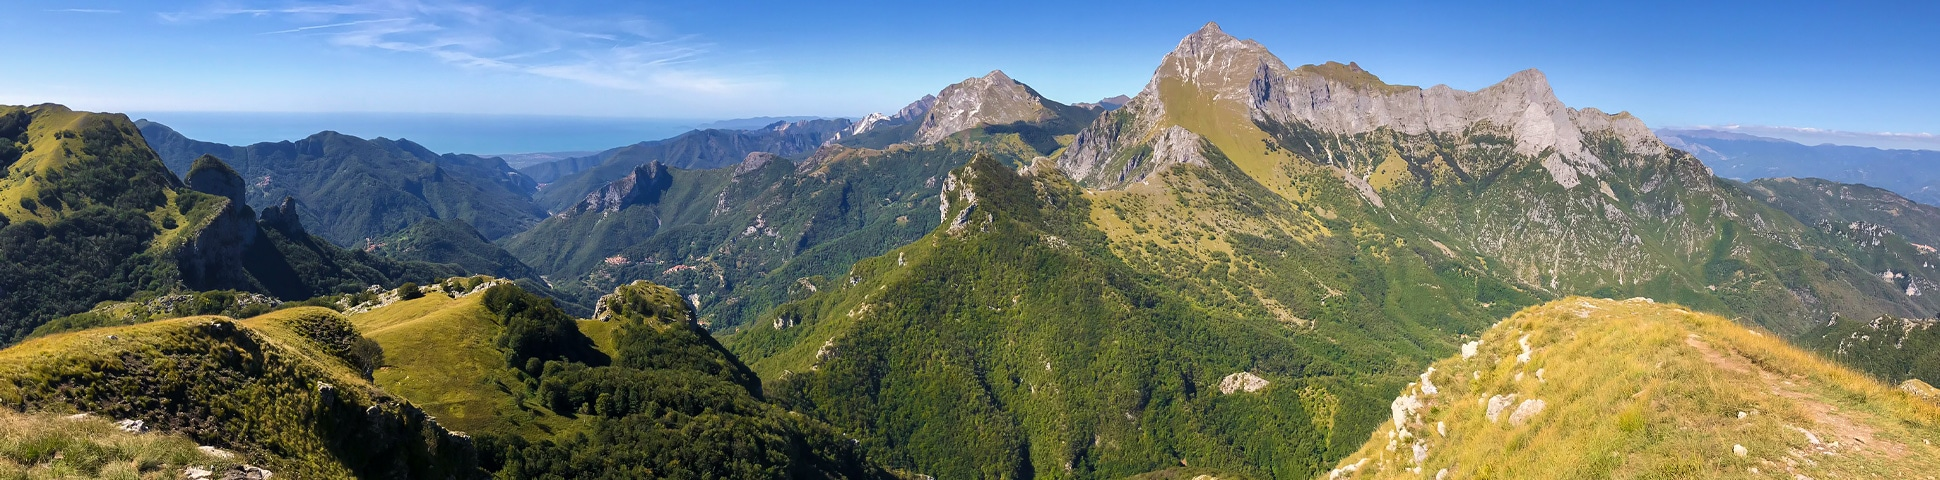 Panoramic view of Monte Croce from Palagnana Hike in Tuscany